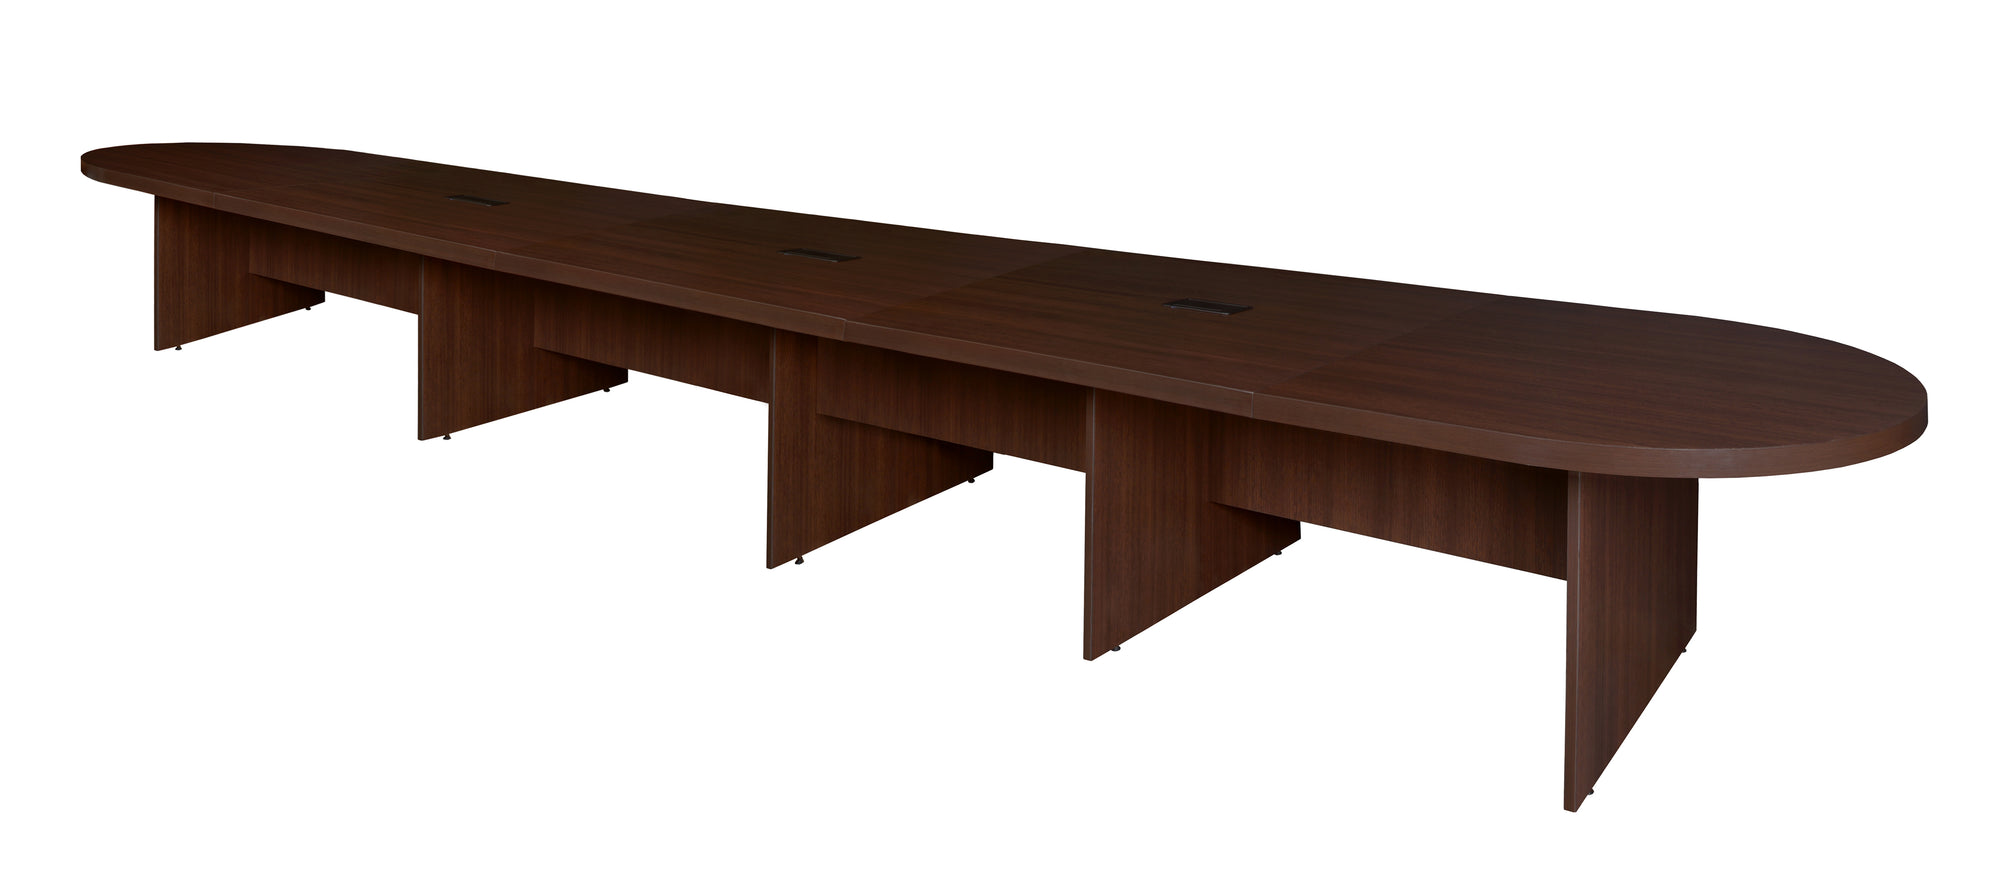 264 22 Foot Modular Conference Table With 3 Power Data Ports In